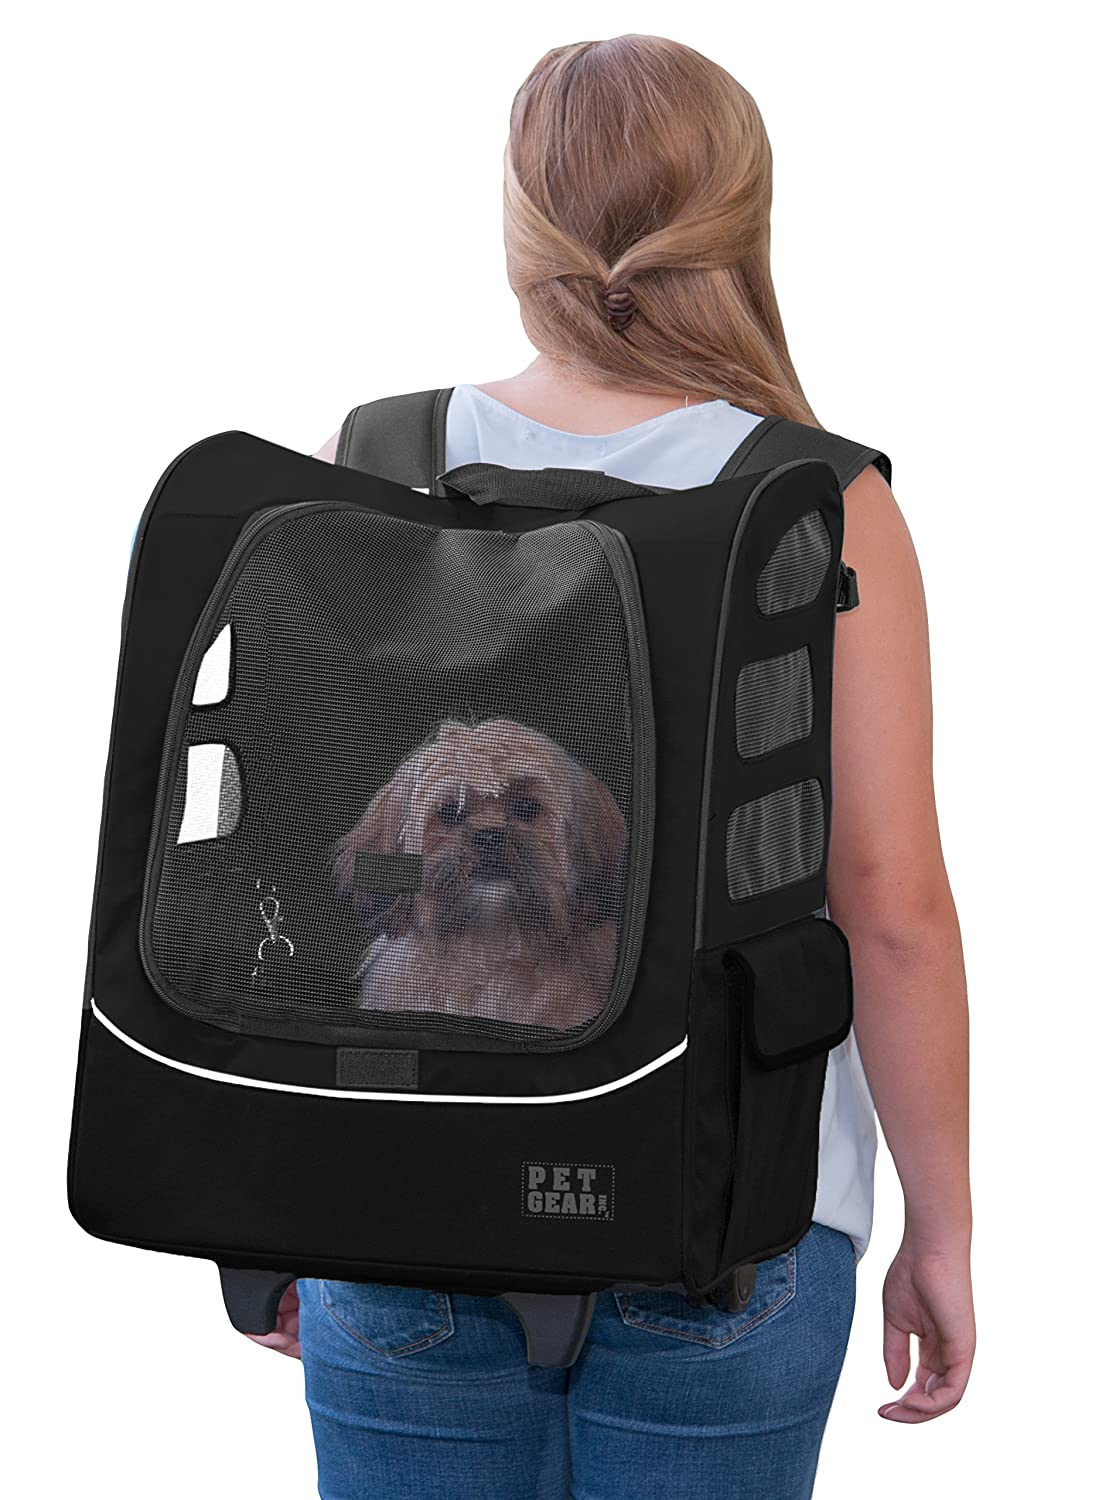 Pet Gear I-GO2 Roller Backpack, Travel Carrier, Car Seat for Cats Dogs, Mesh Ventilation, Included Tether, Telescoping Handle, Storage Pouch